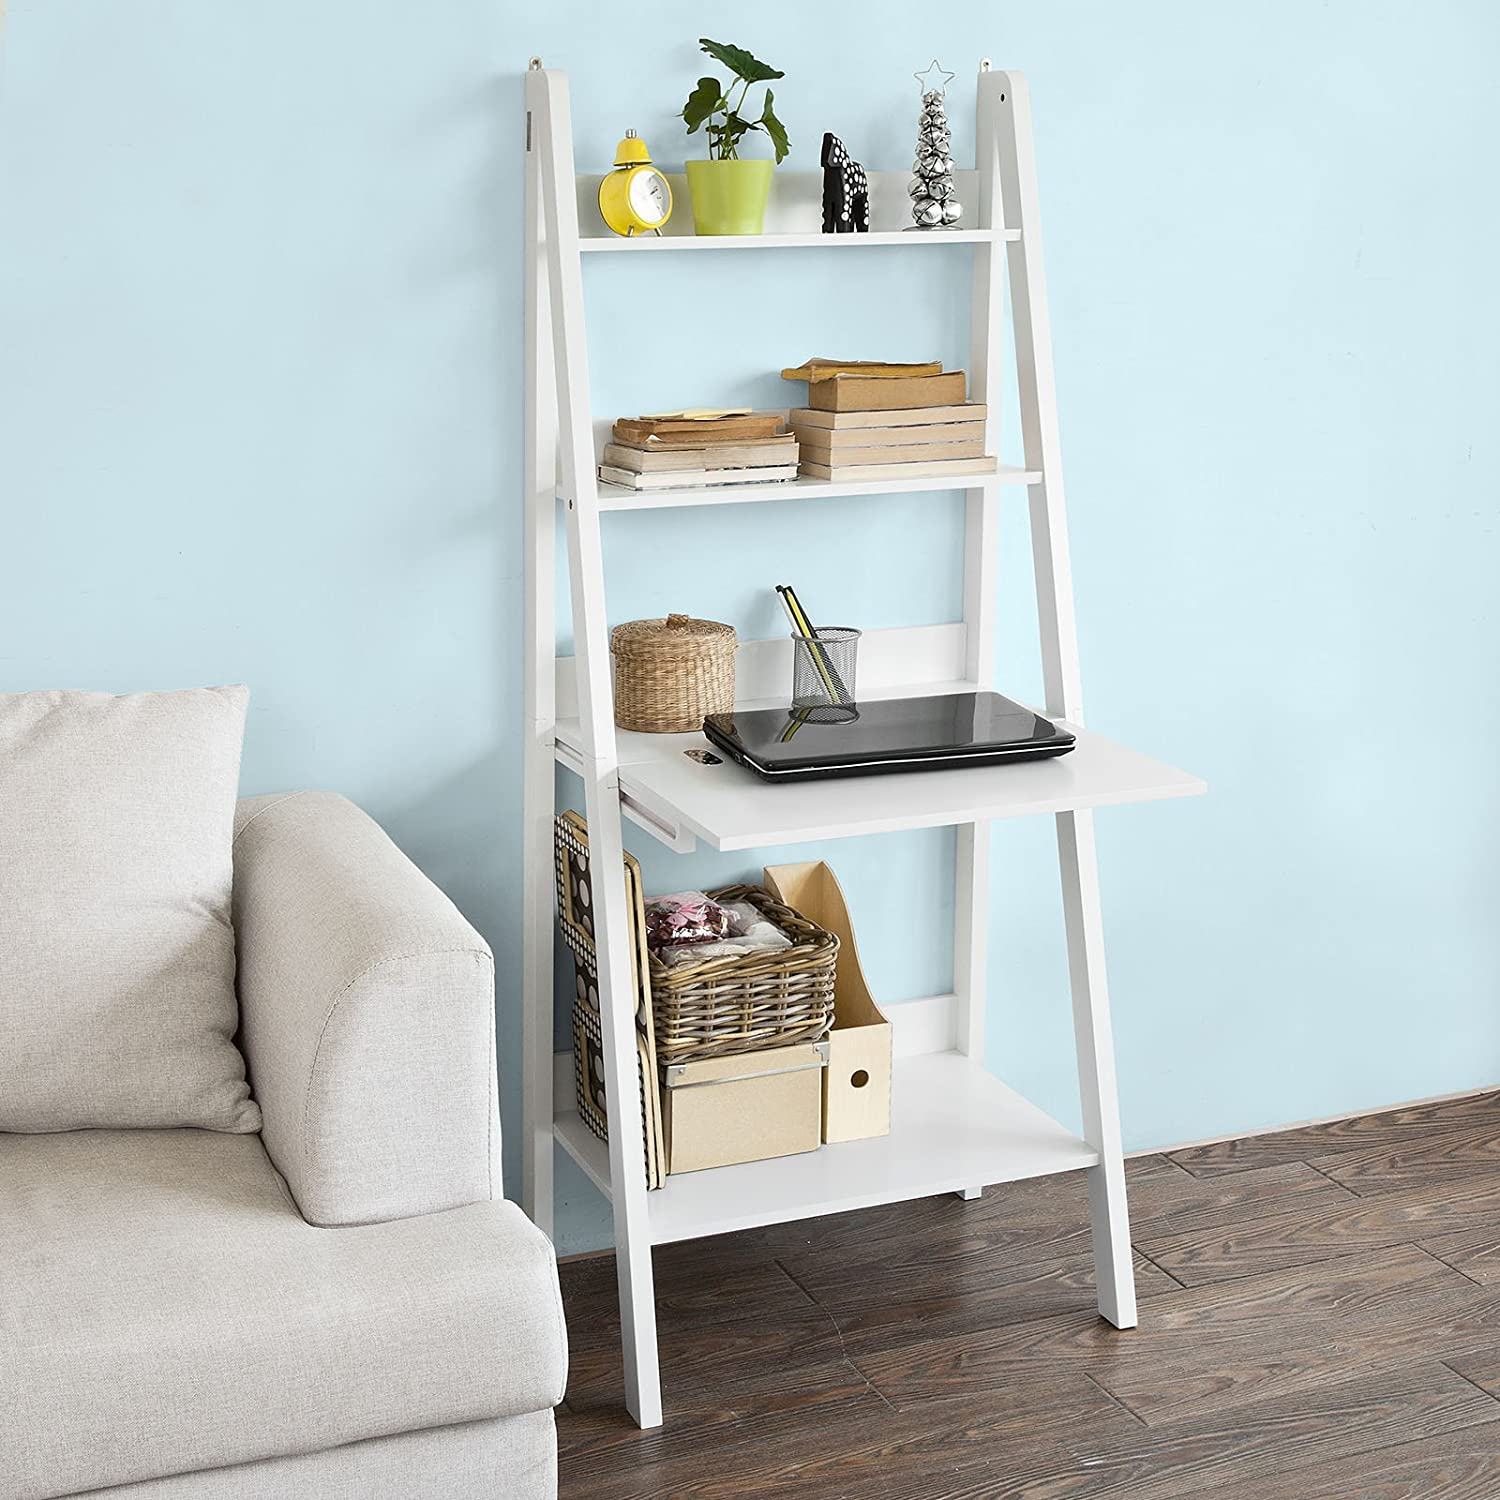 Sobuy Frg115 W, White Storage Display Shelving Ladder Shelf Bookcase With